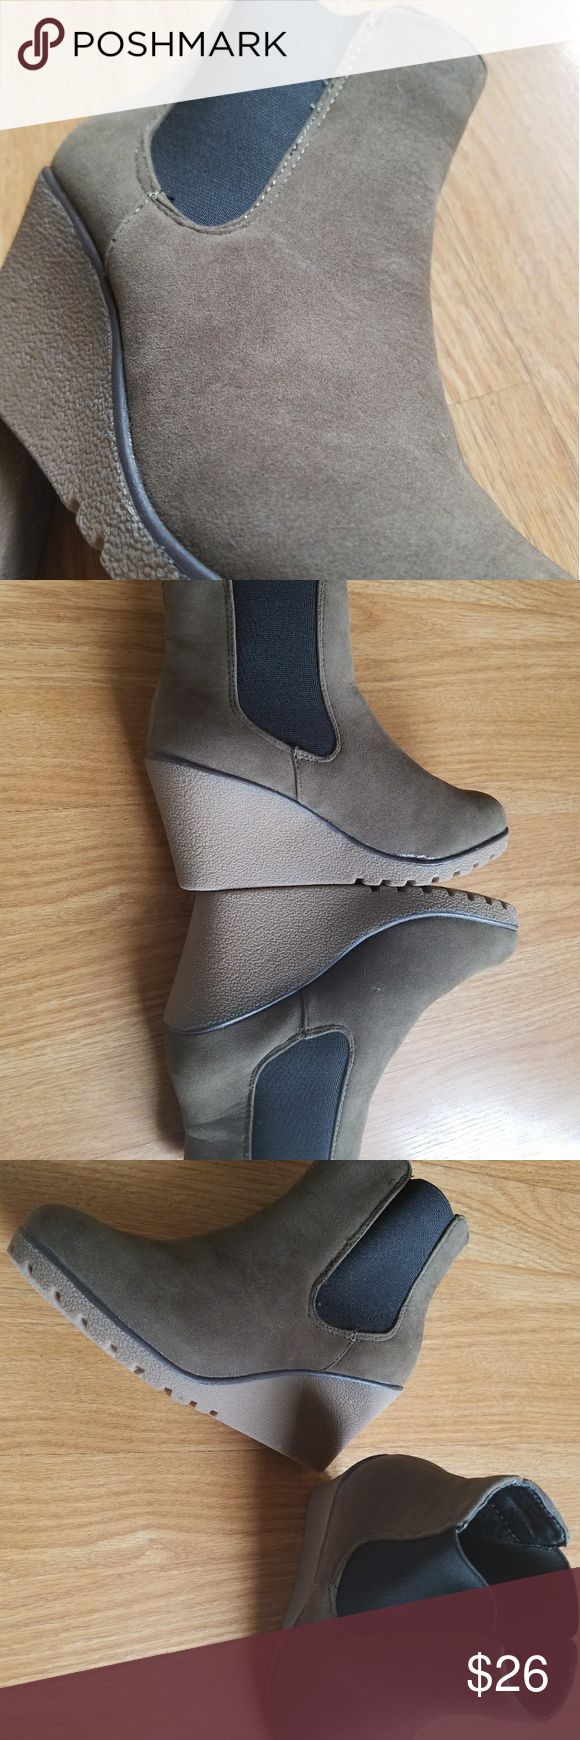 """NWOT Wedge Ankle Boots Size 6.5 Olive Green NWOT Wedge Ankle Boots Size 6.5 Olive Green , 3"""" heel, 1st Kiss brand, black elastic on sides. Without box 1st Kiss Shoes Ankle Boots & Booties"""